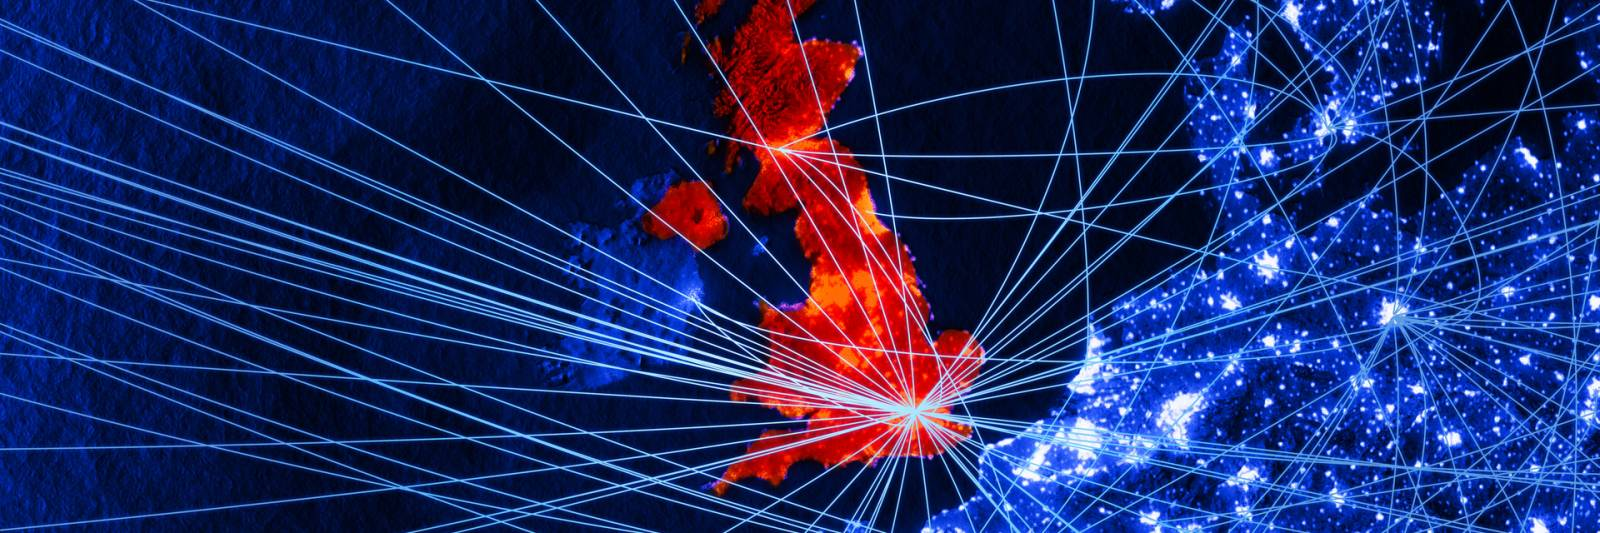 ncsc warns councils over 'foreign influence' in smart city projects